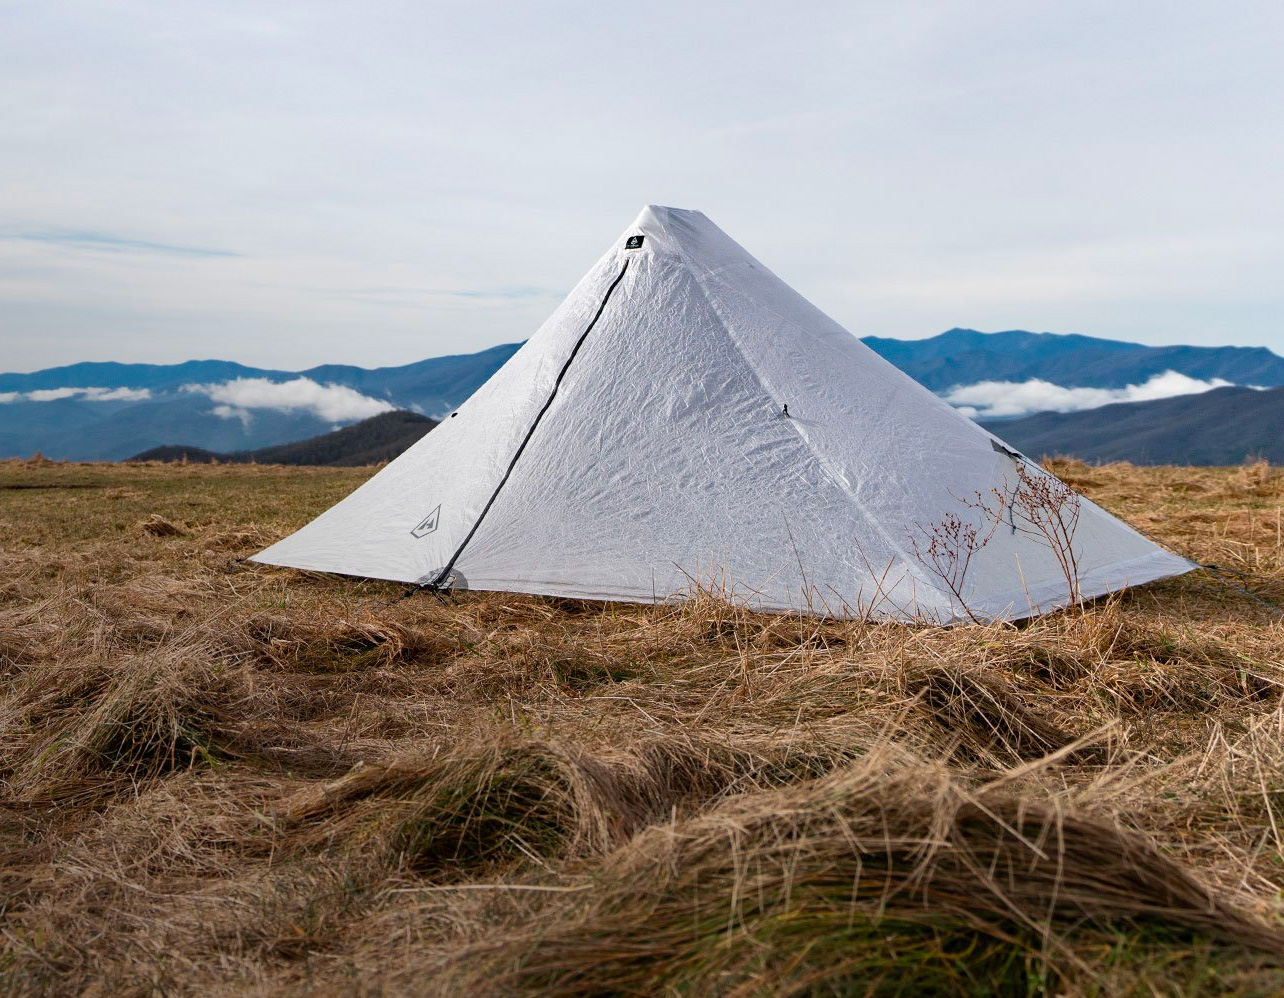 Hyperlite Mountain Gear Introduces Its Newest Tent: The Dirigo 2 at werd.com